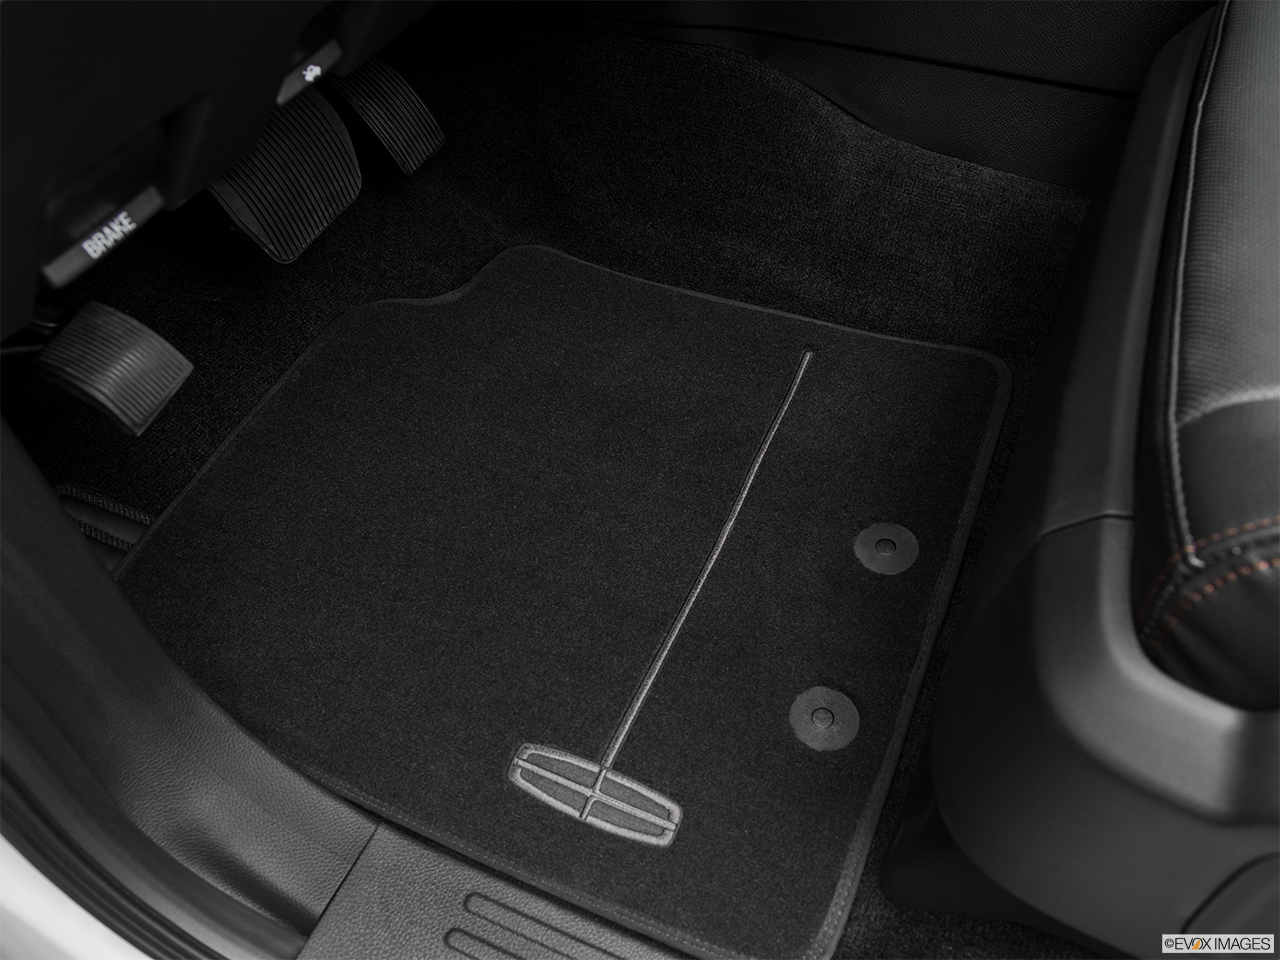 2016 Lincoln Navigator Reserve Driver's floor mat and pedals. Mid-seat level from outside looking in.